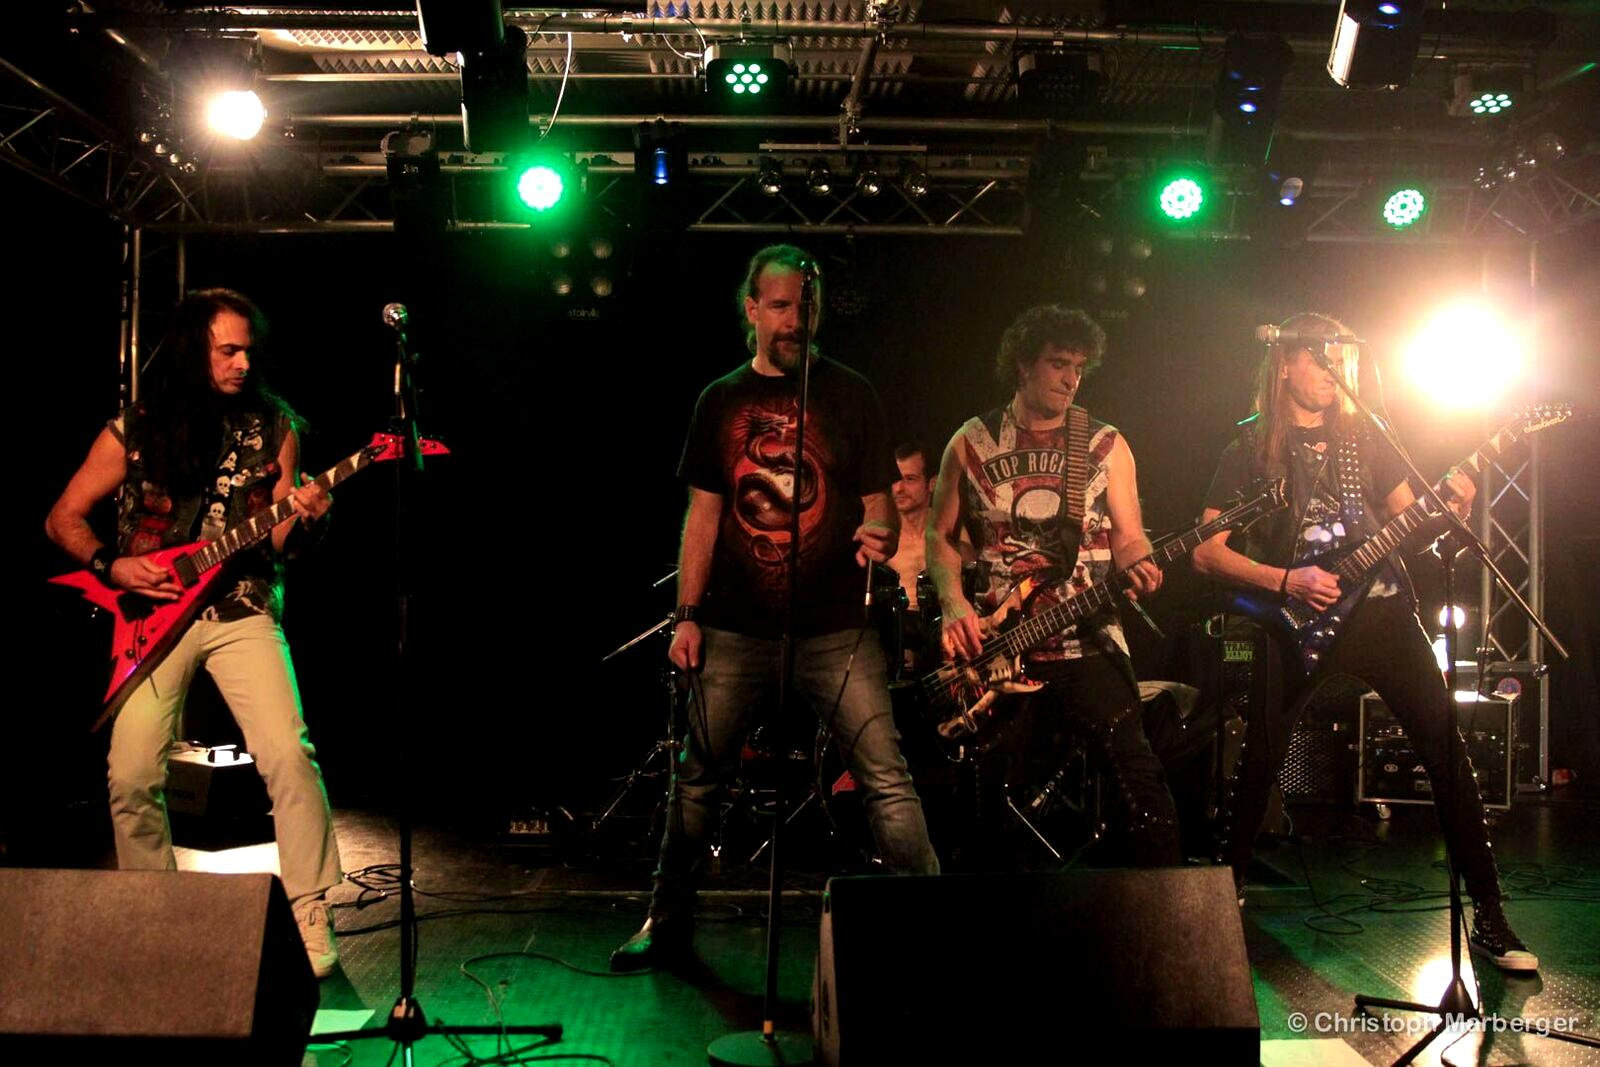 Anguish Force Livestage 57 - Raining Blood Night - Livestage Innsbruck - live